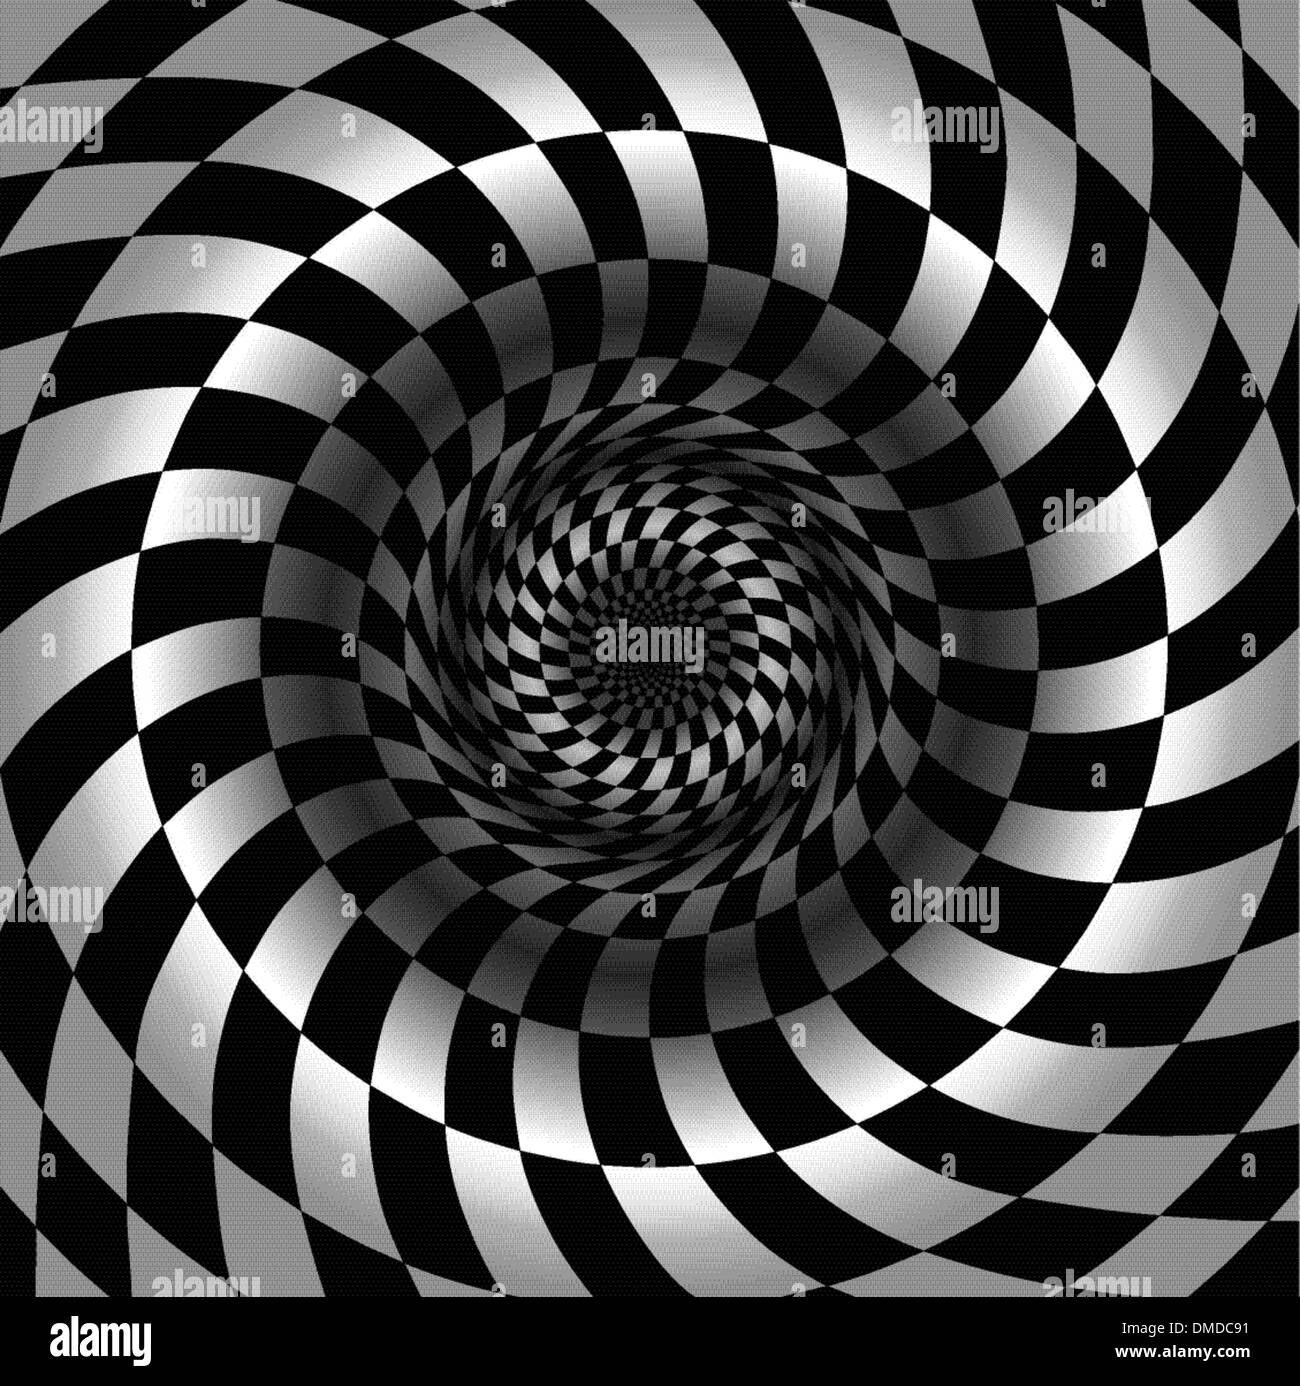 Abstract black and white chess background - Stock Image